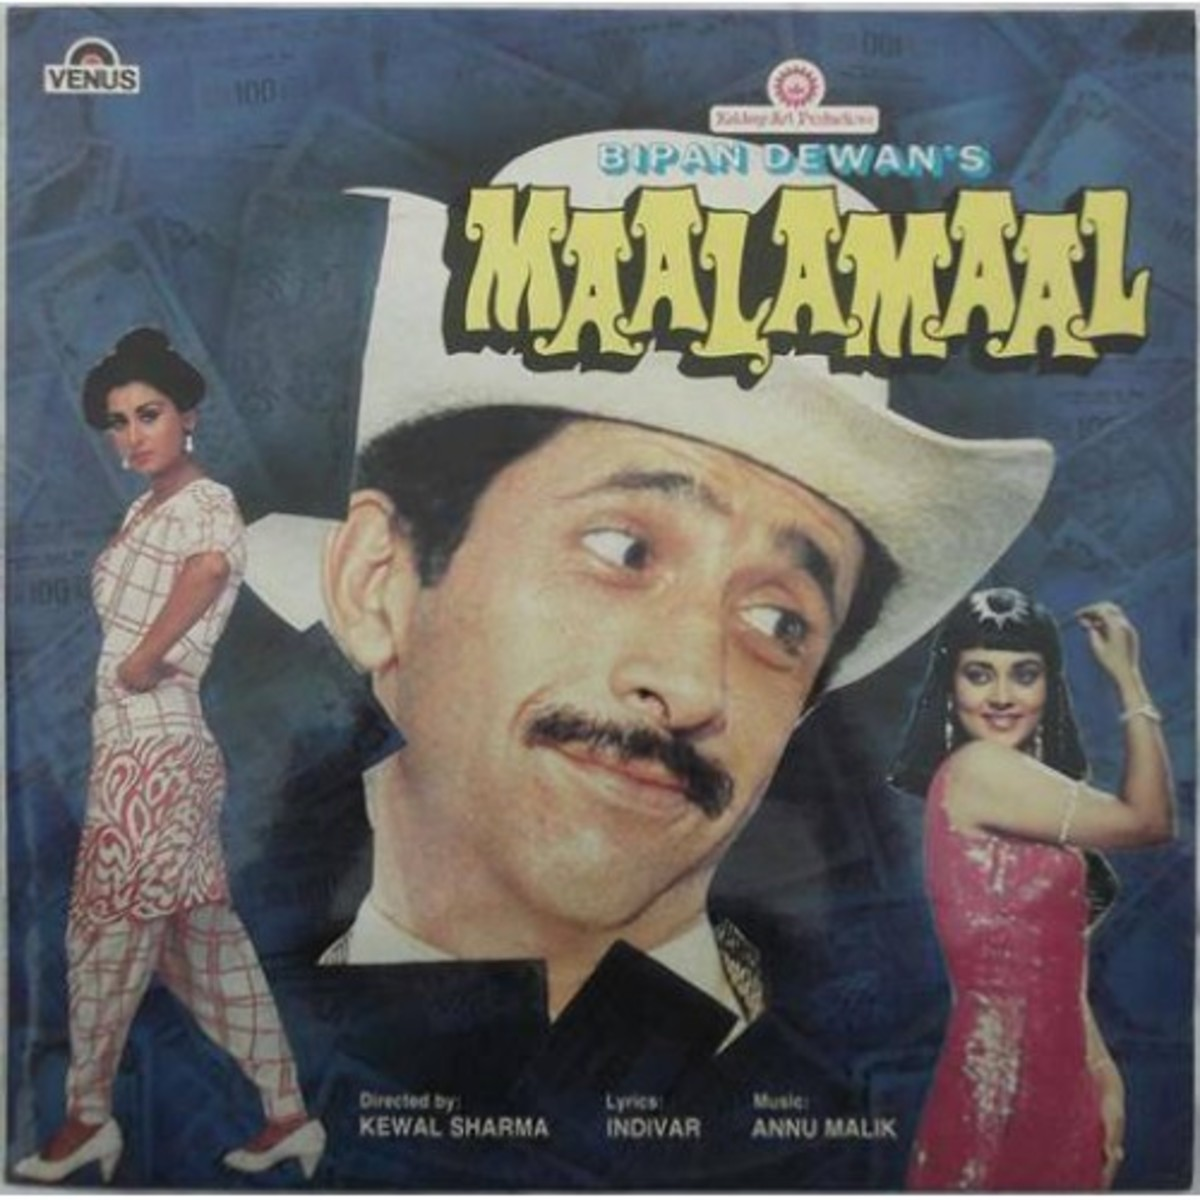 Official cover photo of Maalamaal